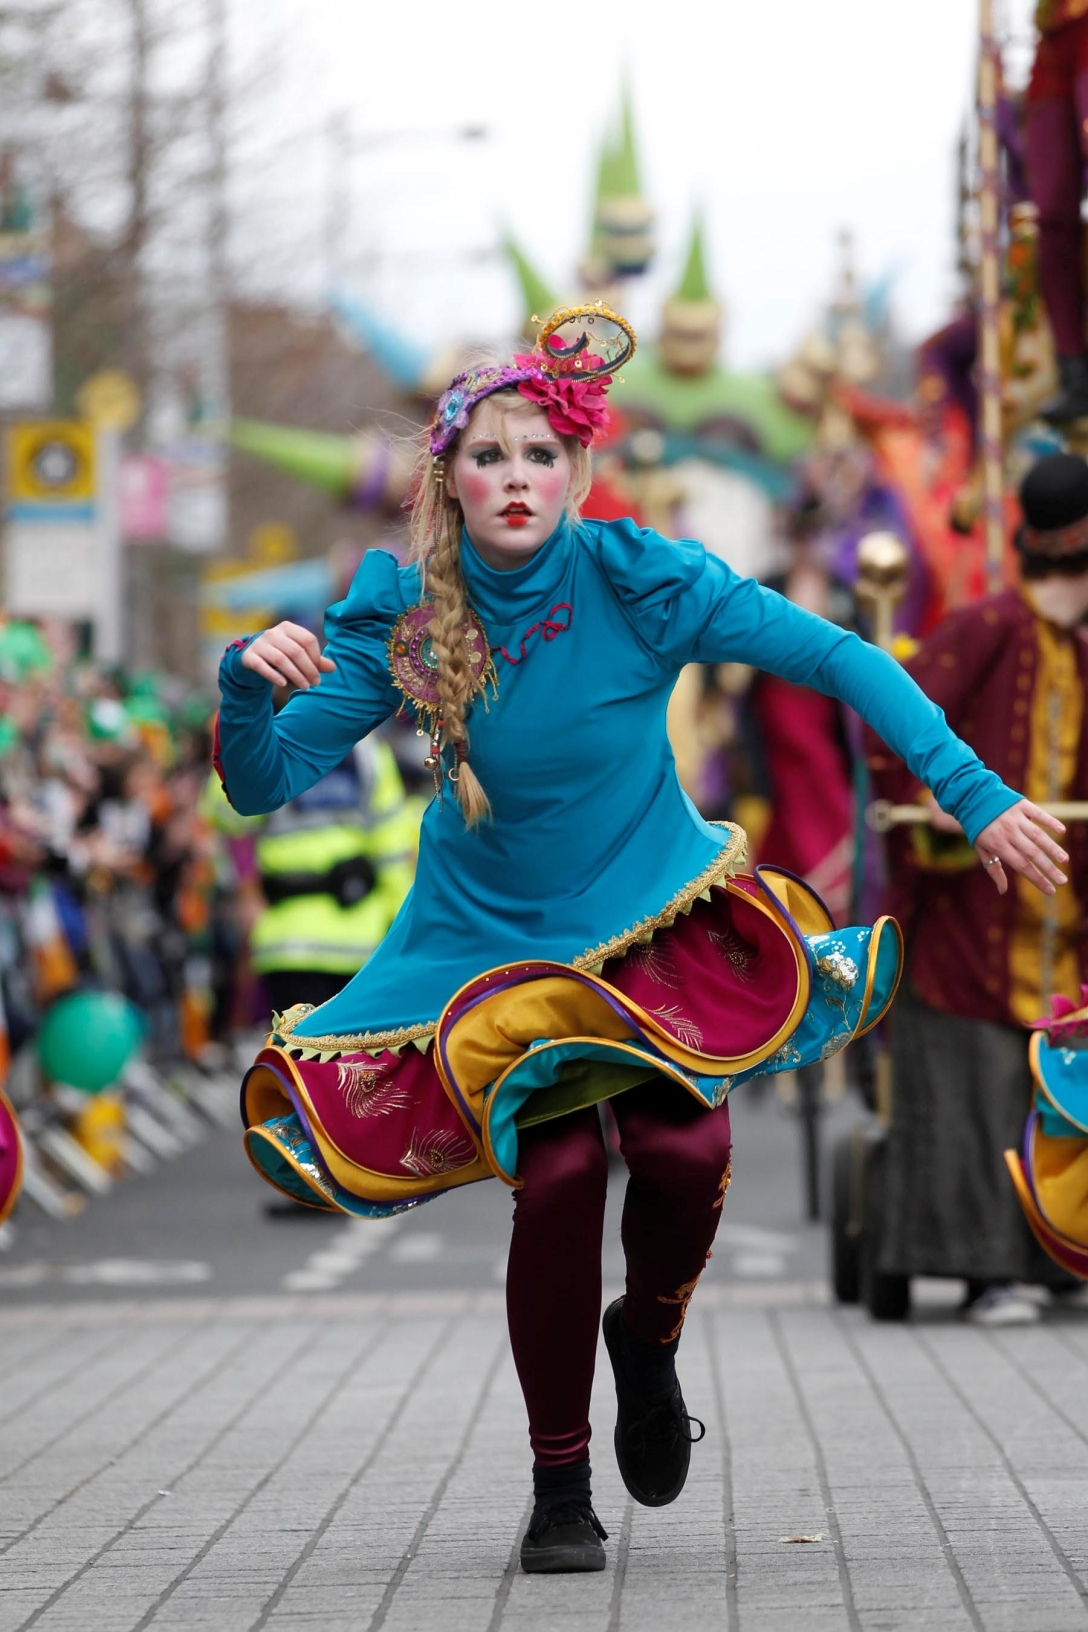 Colourful costumes add to the celebrations